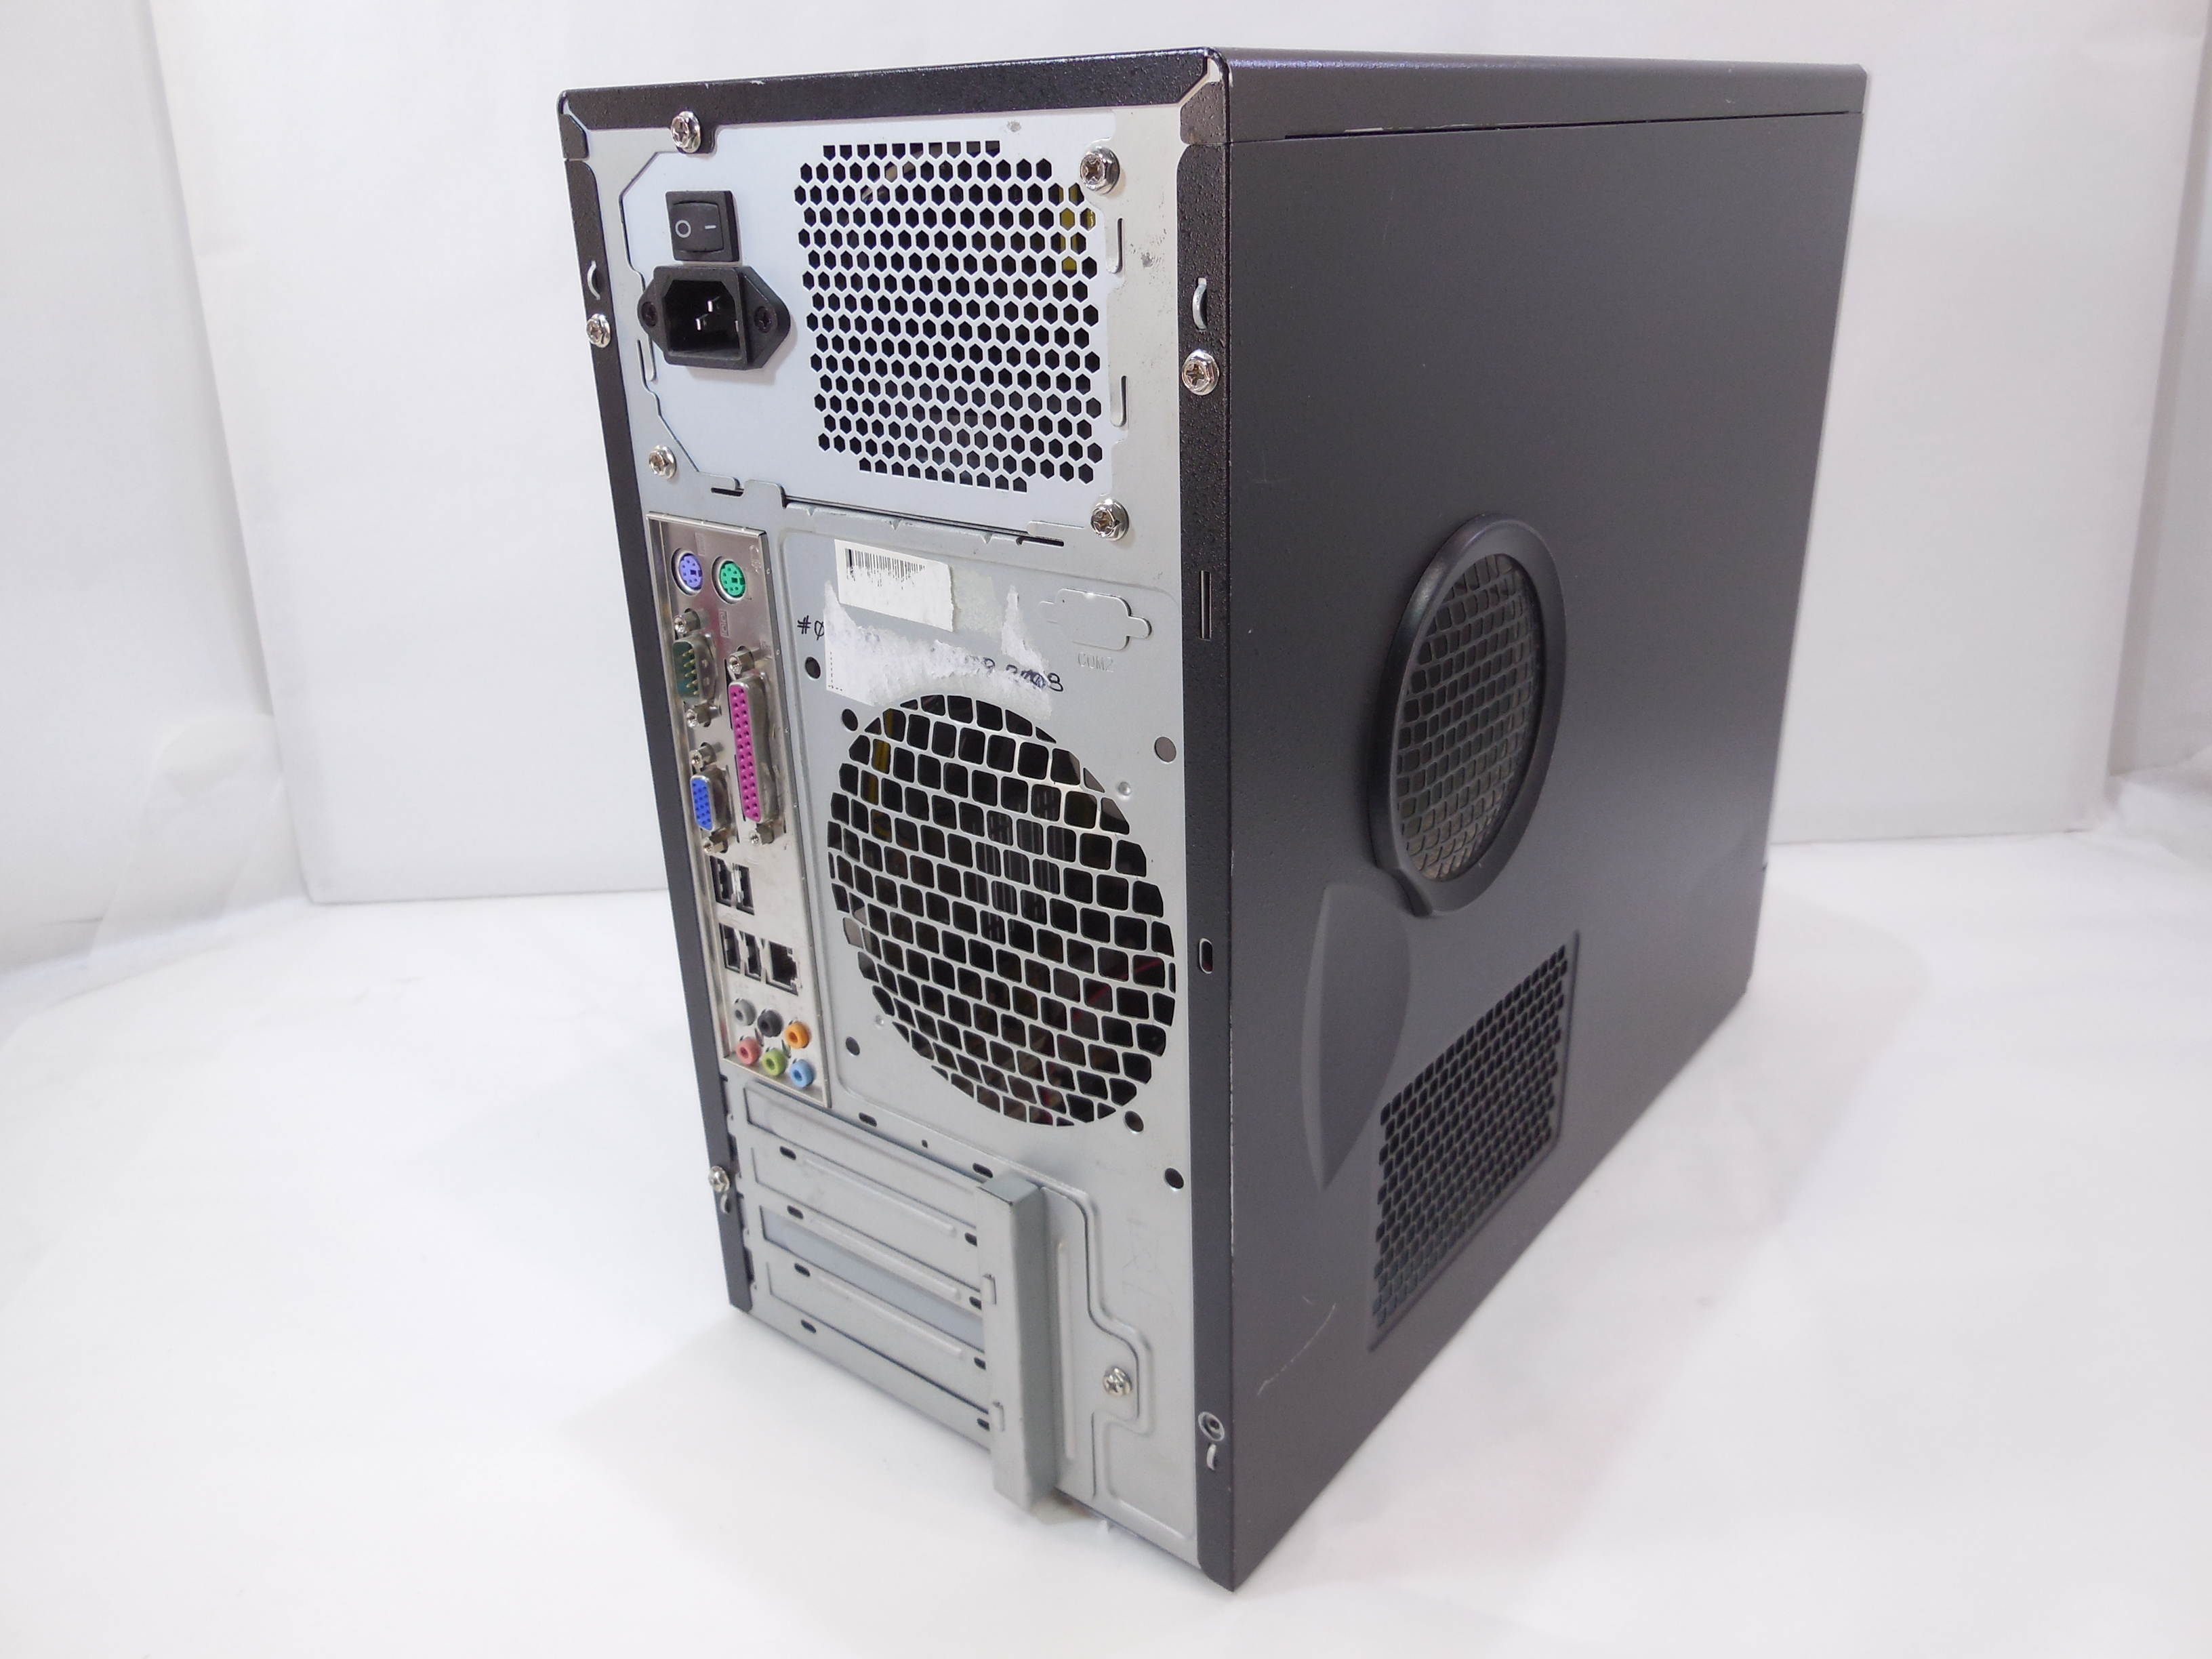 Комп. Intel Pent. Dual-Core E5400 (2.70GHz) - Pic n 283093